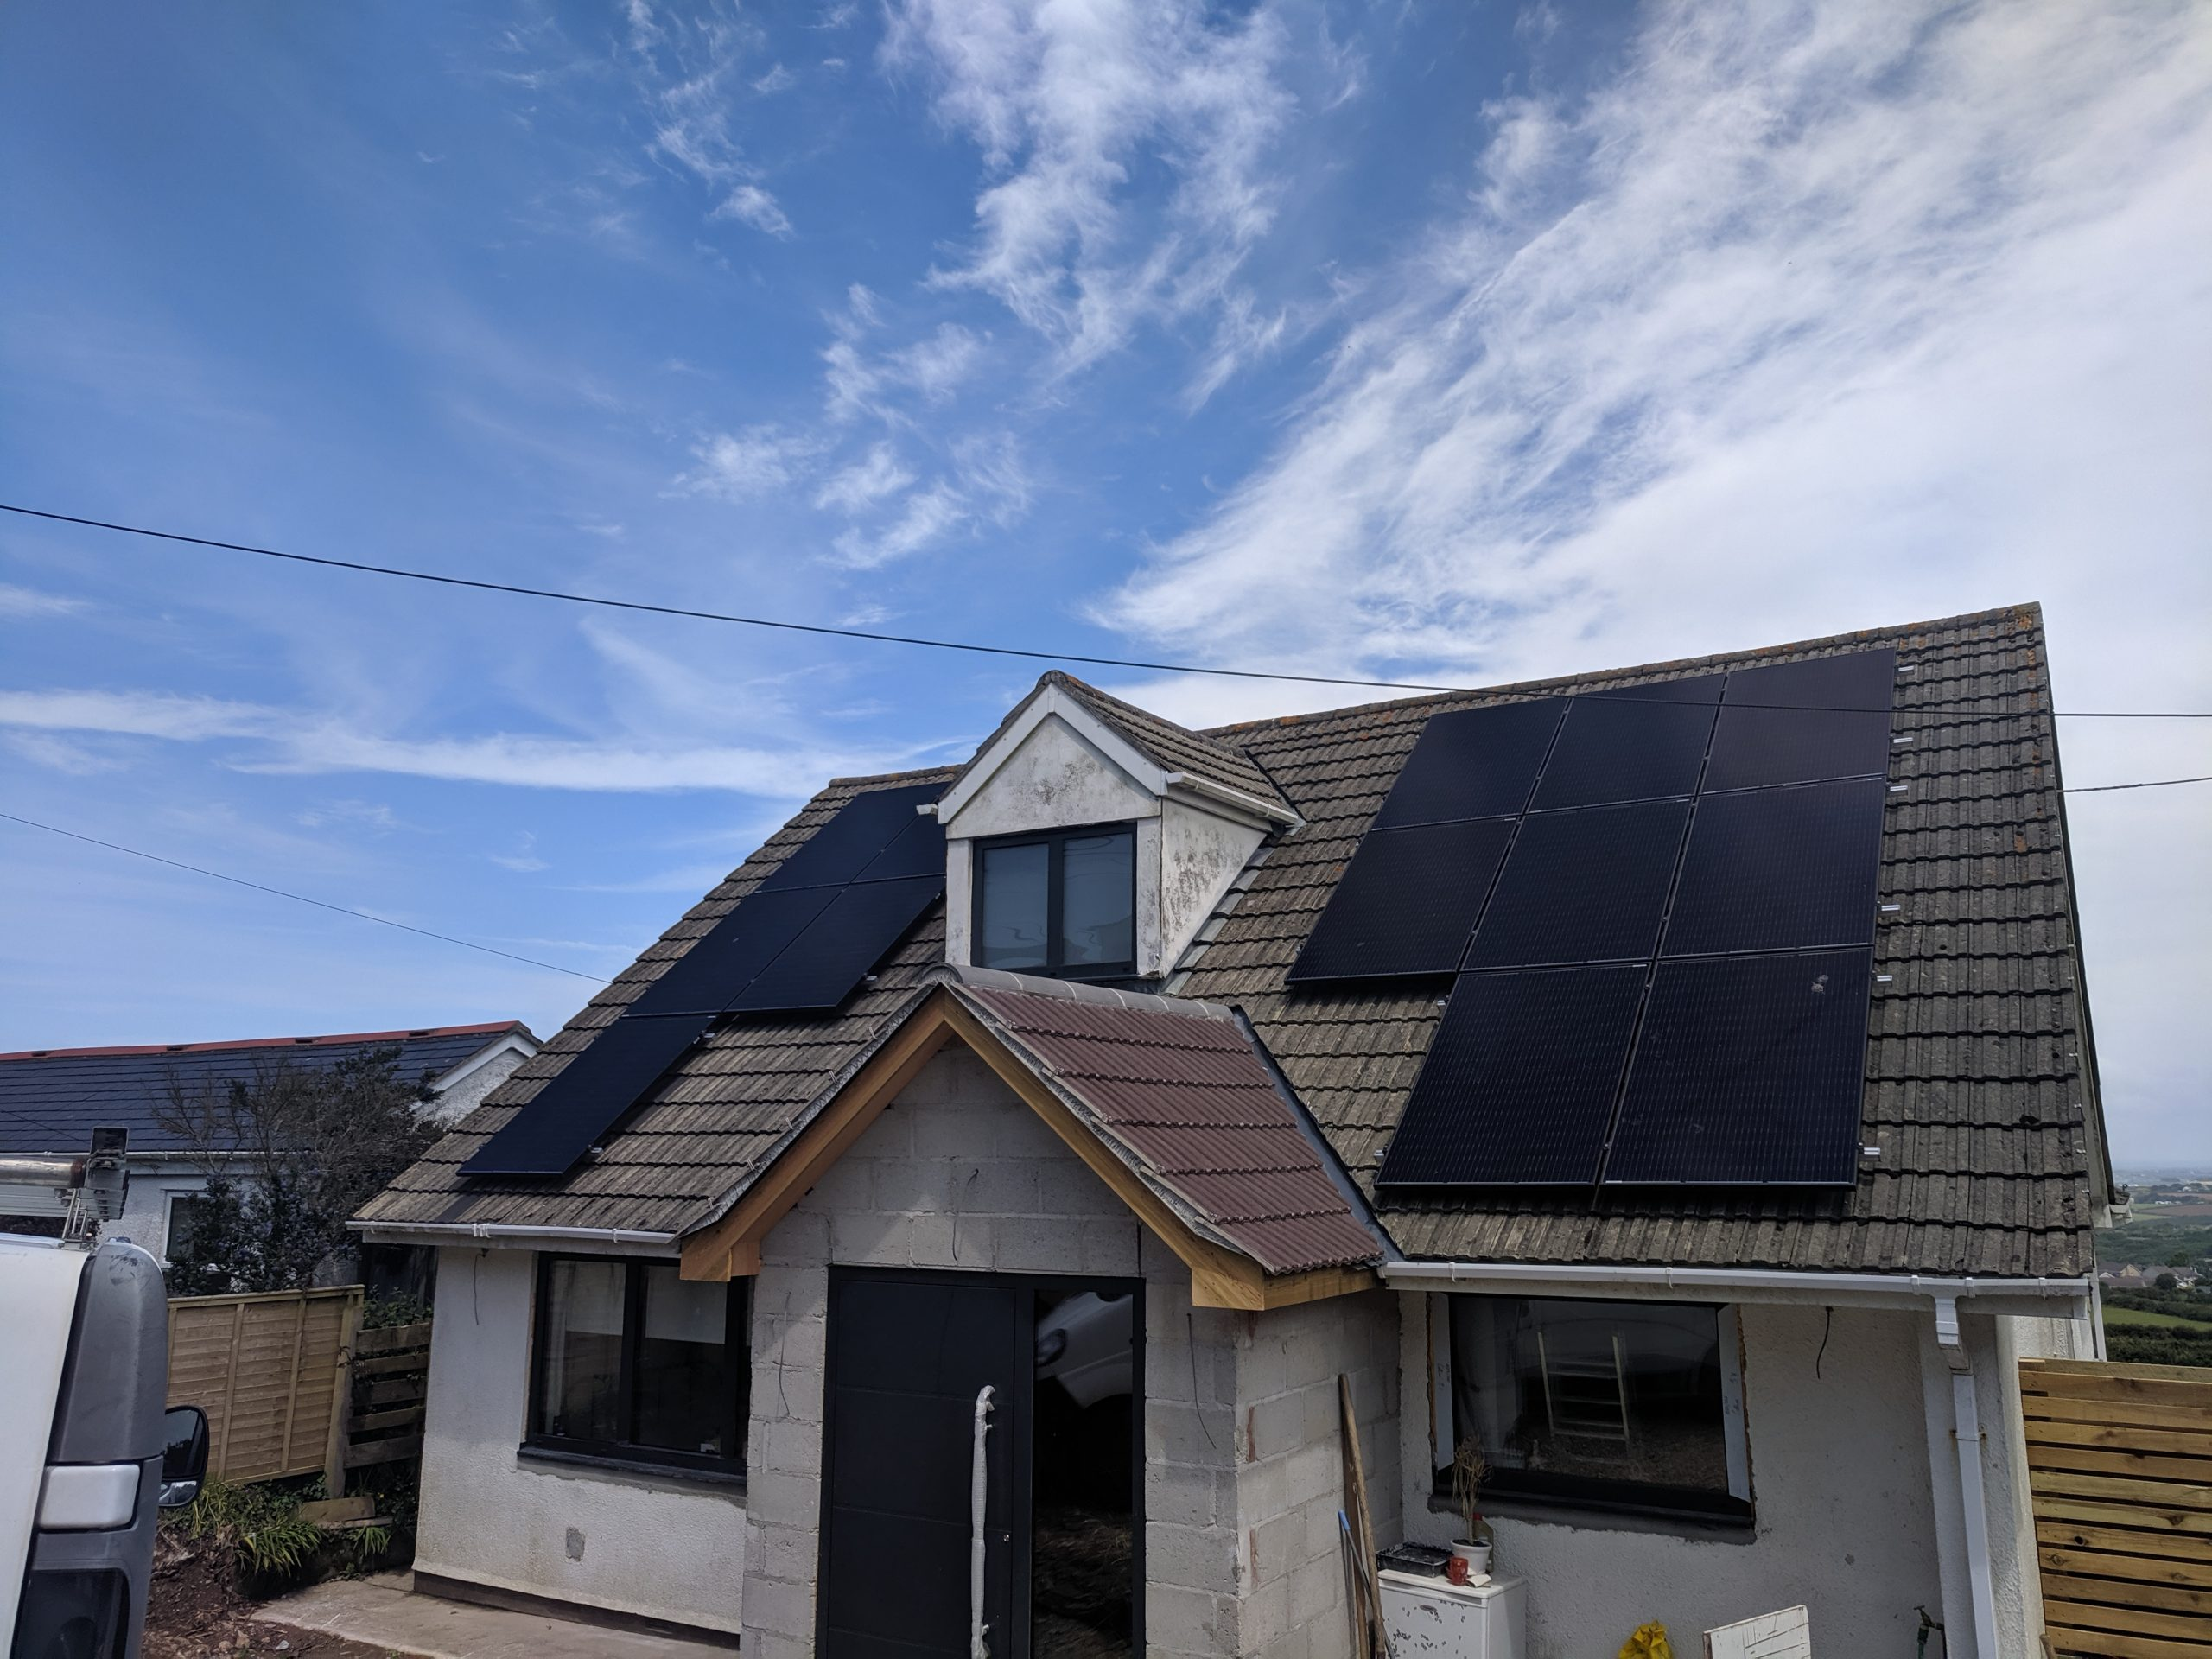 A 4.1kW SolarEdge smart solar PV installation in St. Agnes, Cornwall.